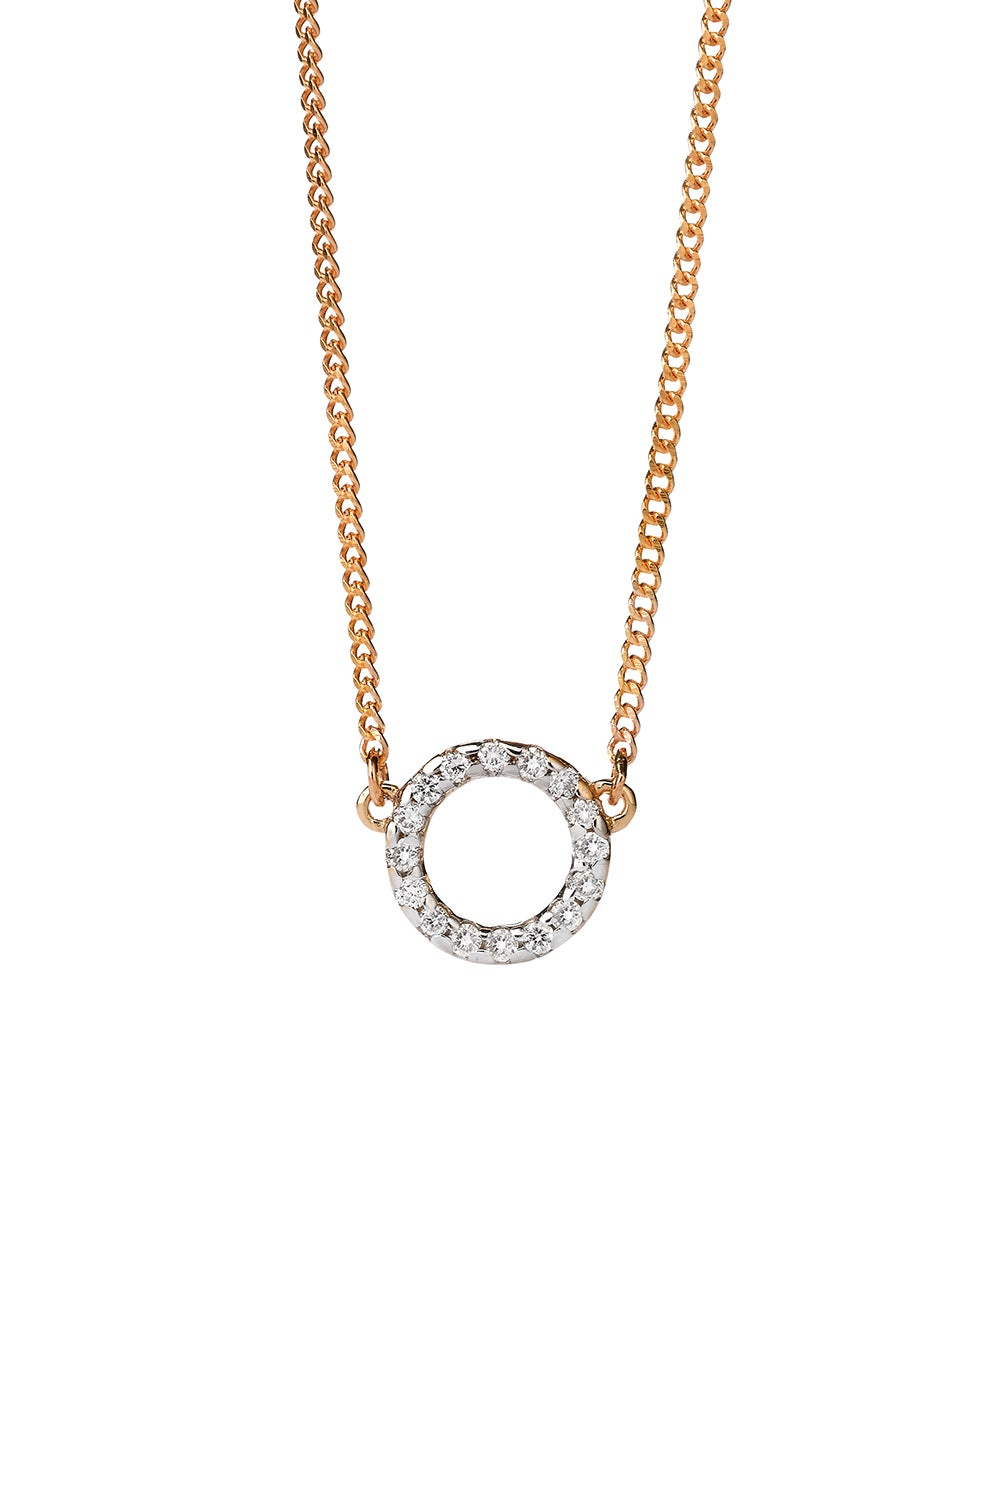 Orbit Diamond Necklace, 9ct Gold, .11ct Diamond